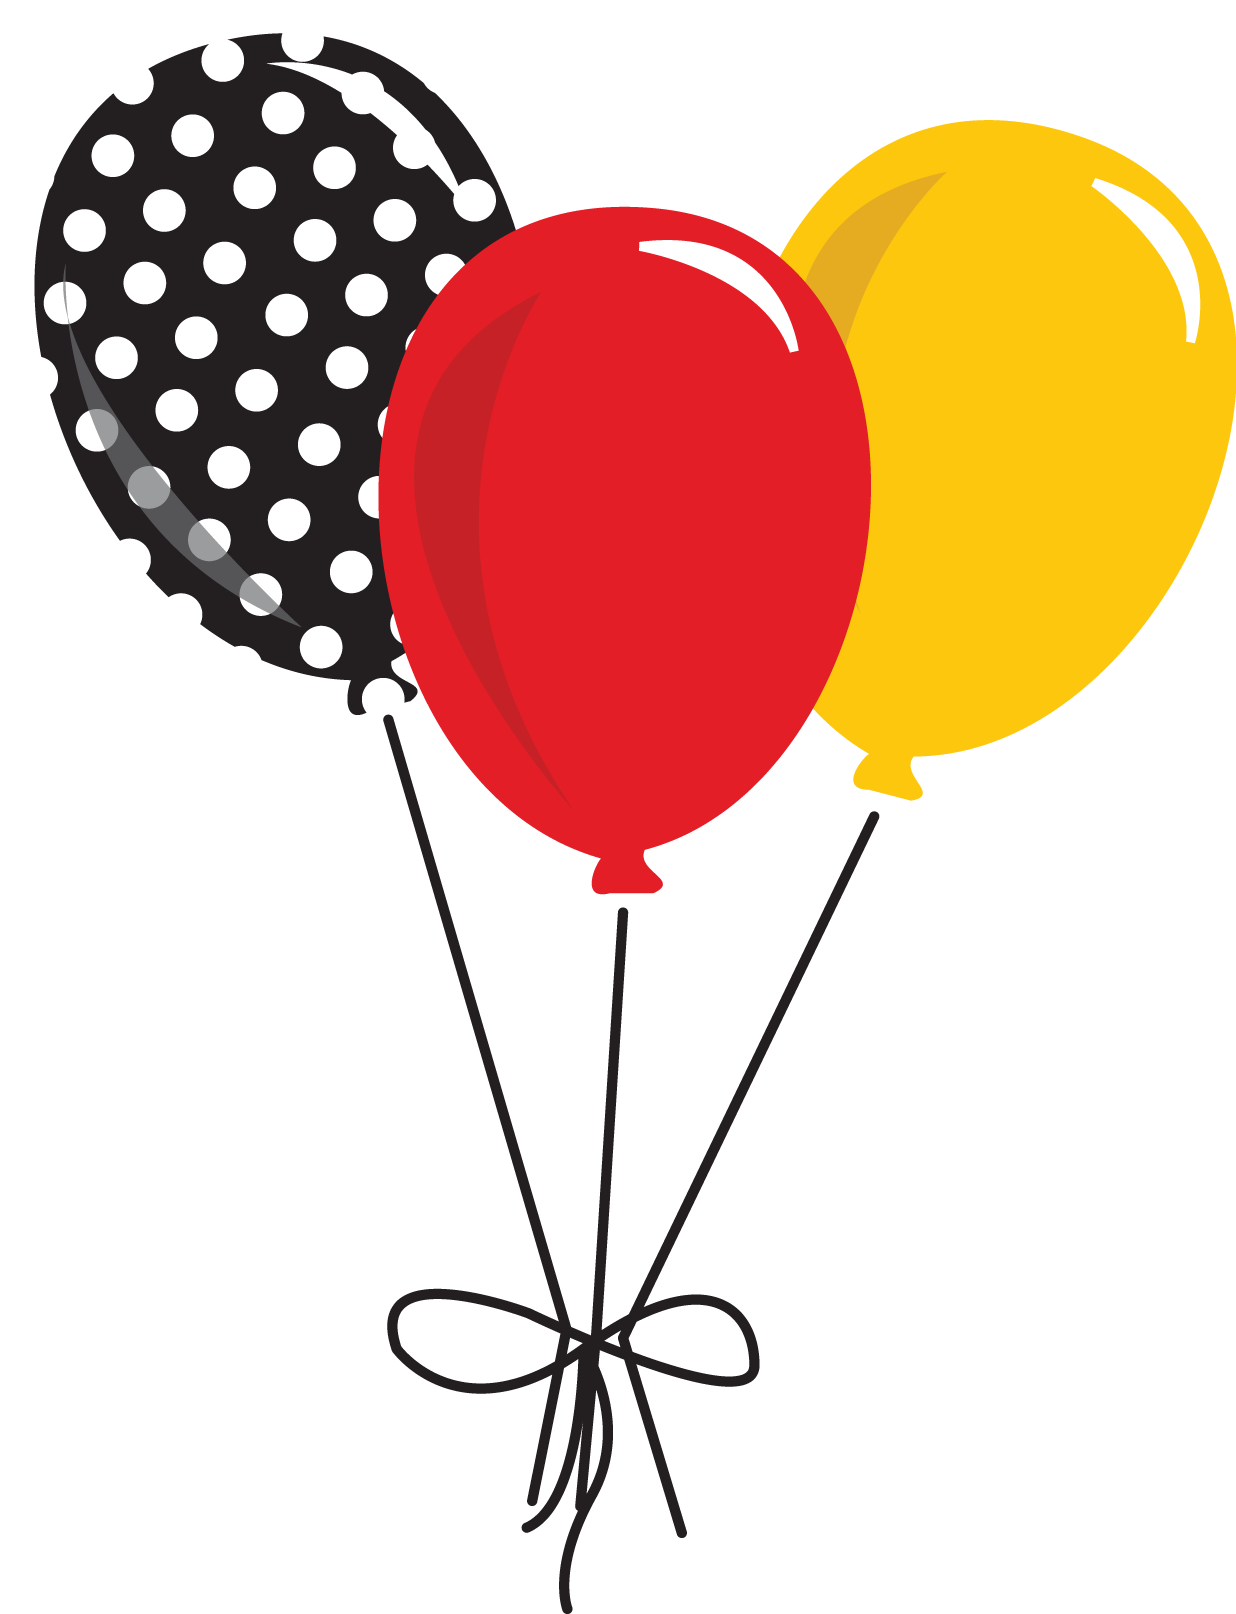 Mickey Mouse clipart balloon Pin cakecrusadersblog http://www Mickey